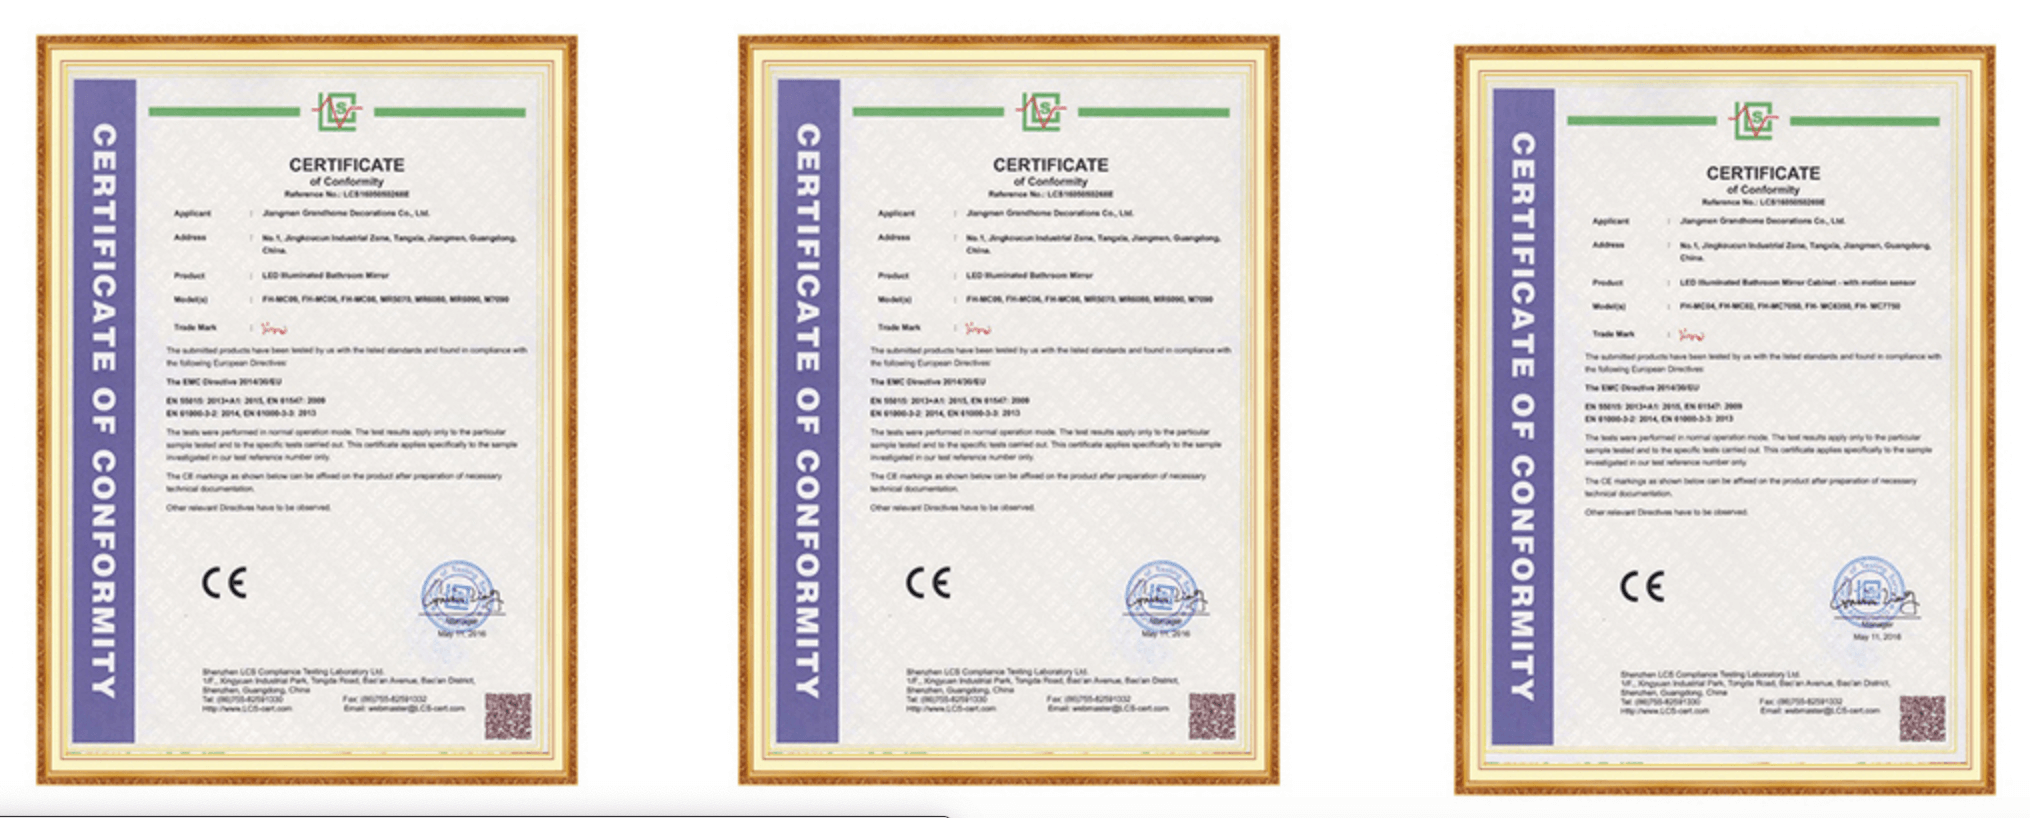 Framed Mirror Manufacturers CERTIFICATIONGS